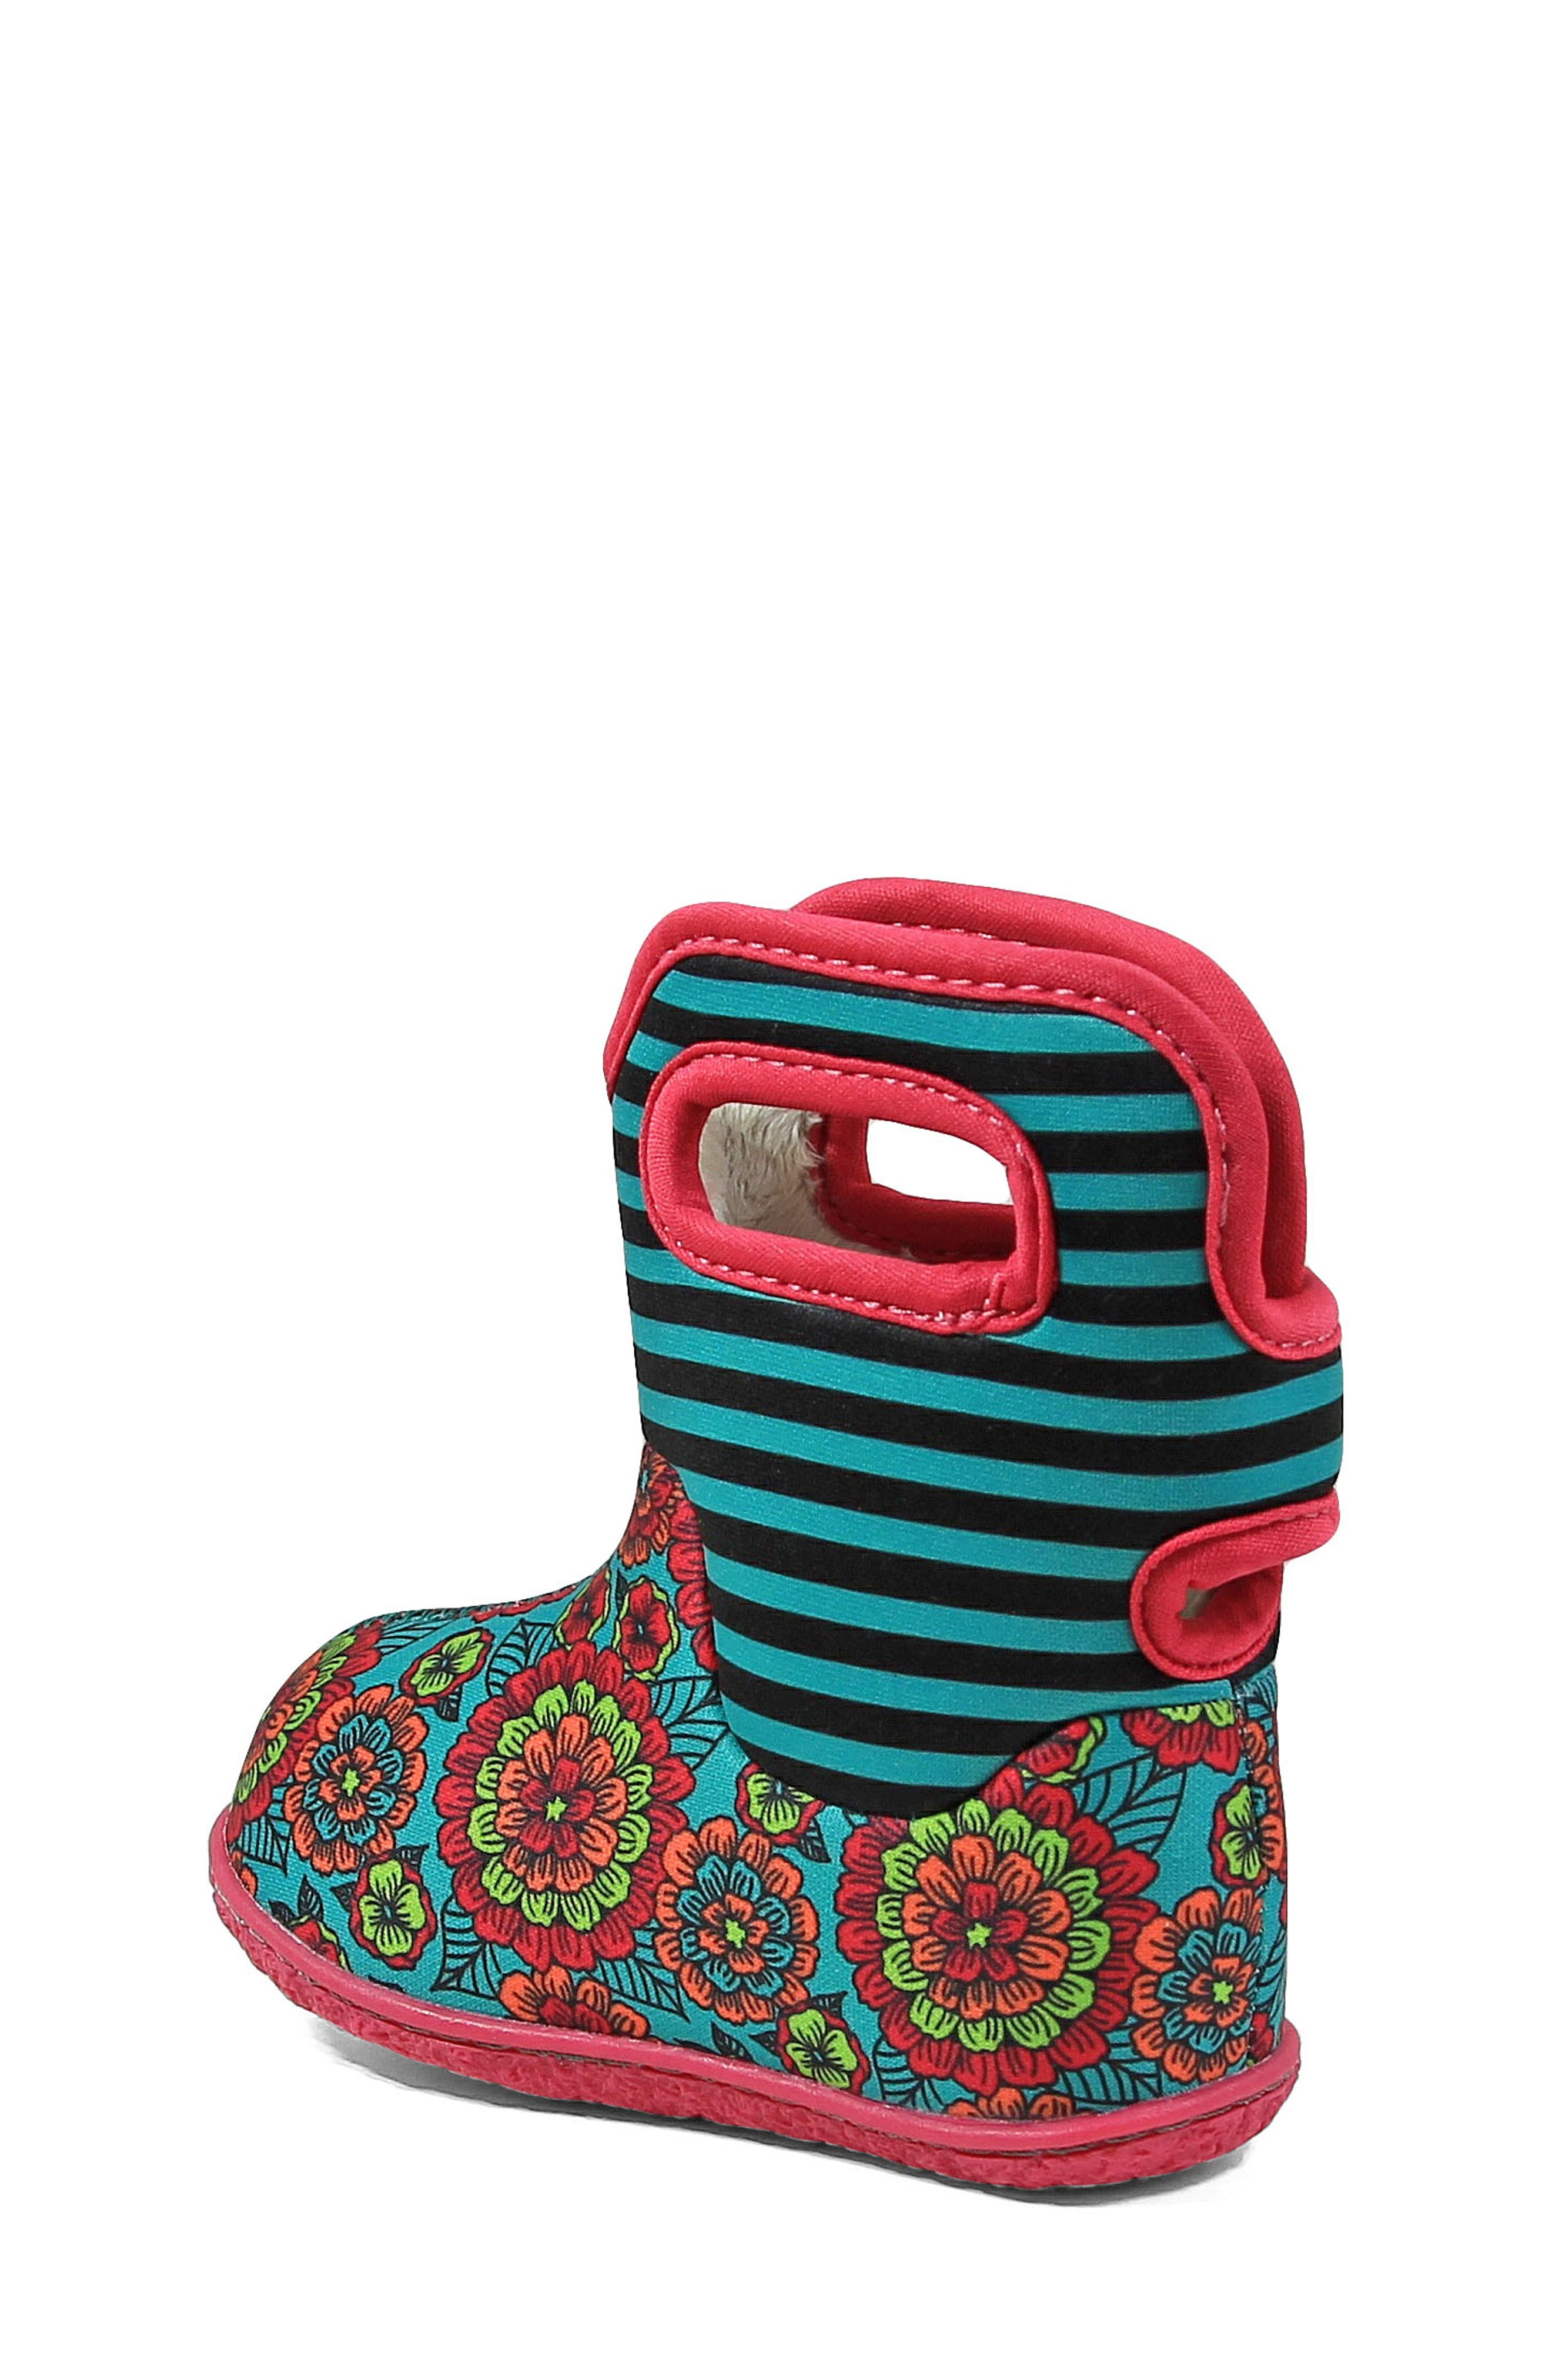 BOGS,                             Baby Bogs Classic Pansies Washable Insulated Waterproof Boot,                             Alternate thumbnail 2, color,                             346